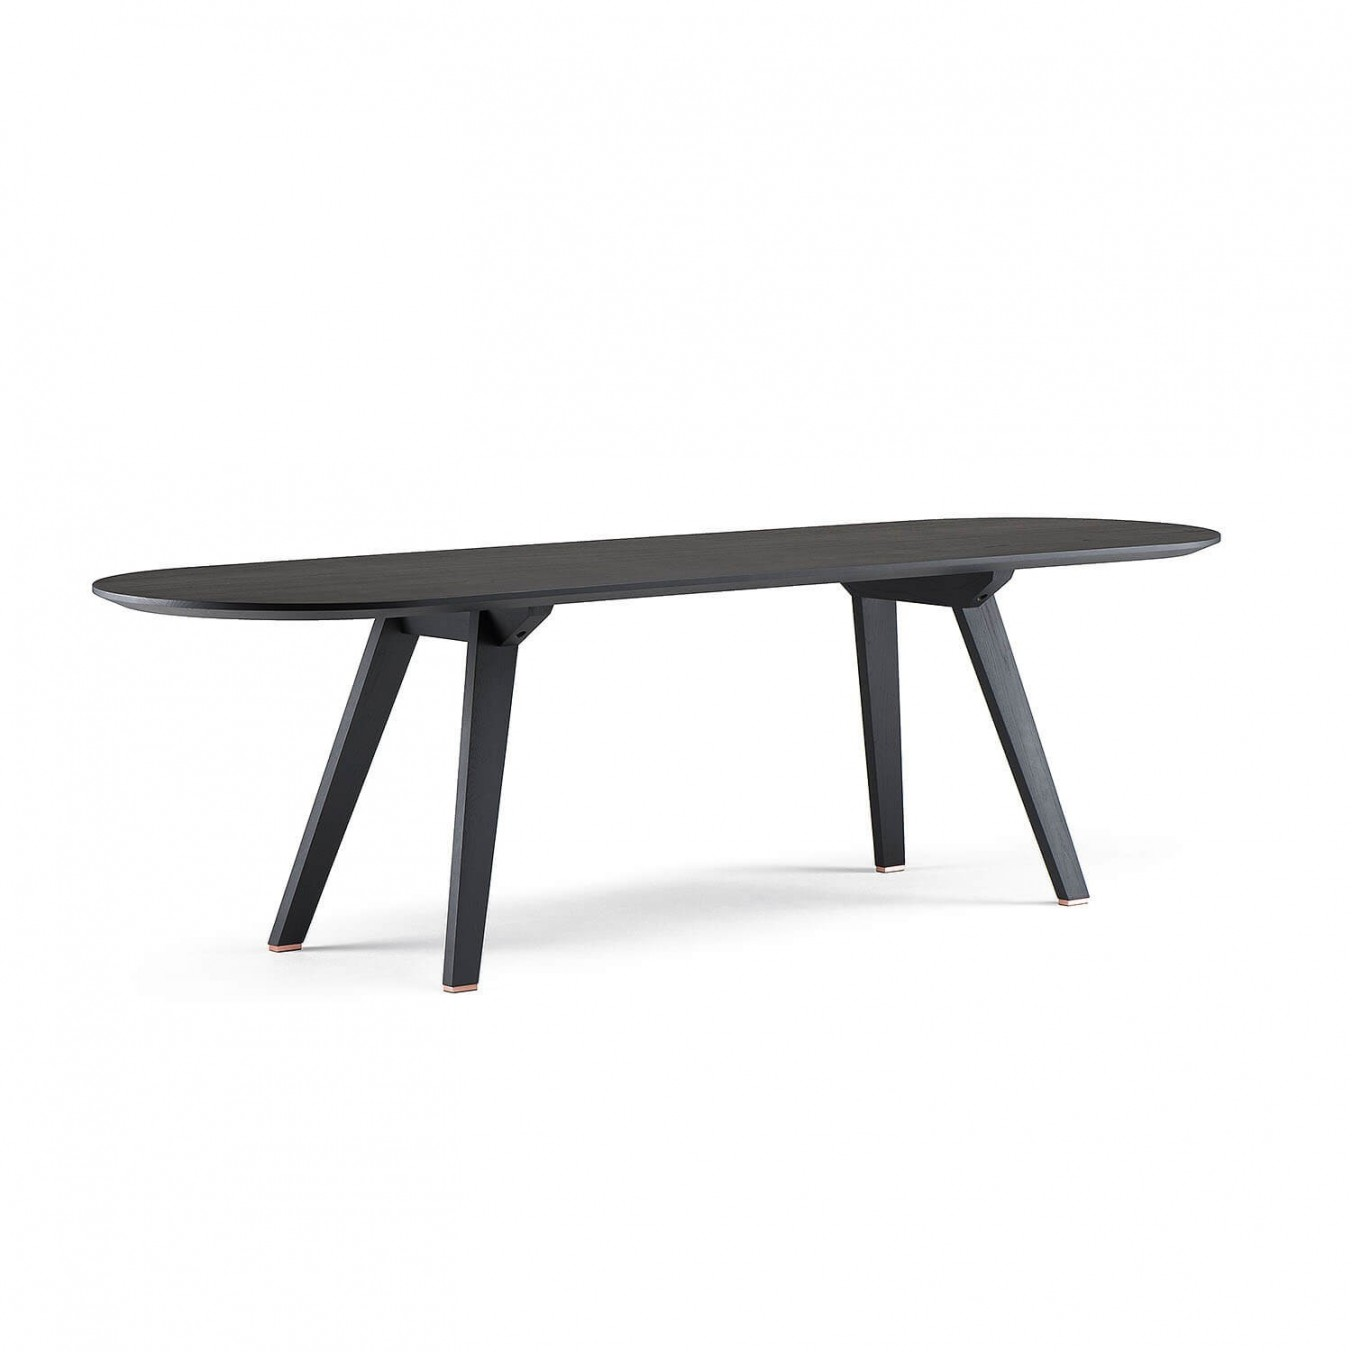 TOGETHER FIXED TABLE